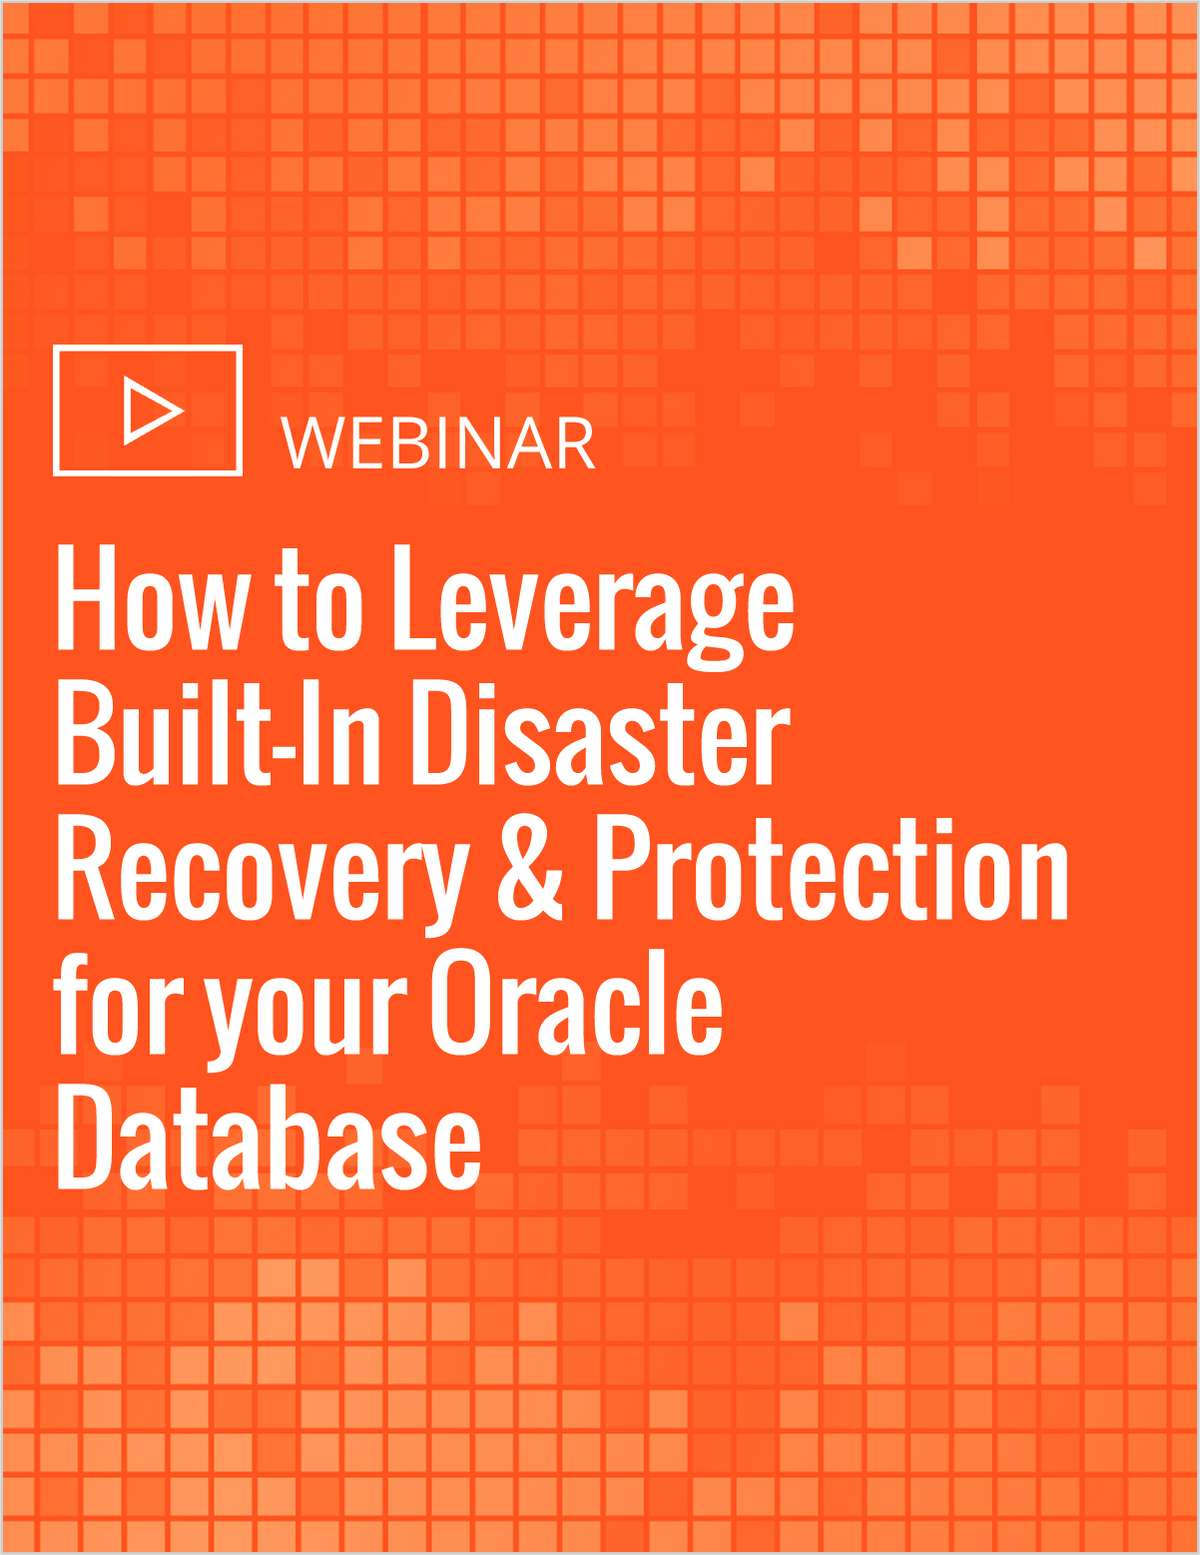 How to Leverage Built-In Disaster Recovery & Protection for your Oracle Database